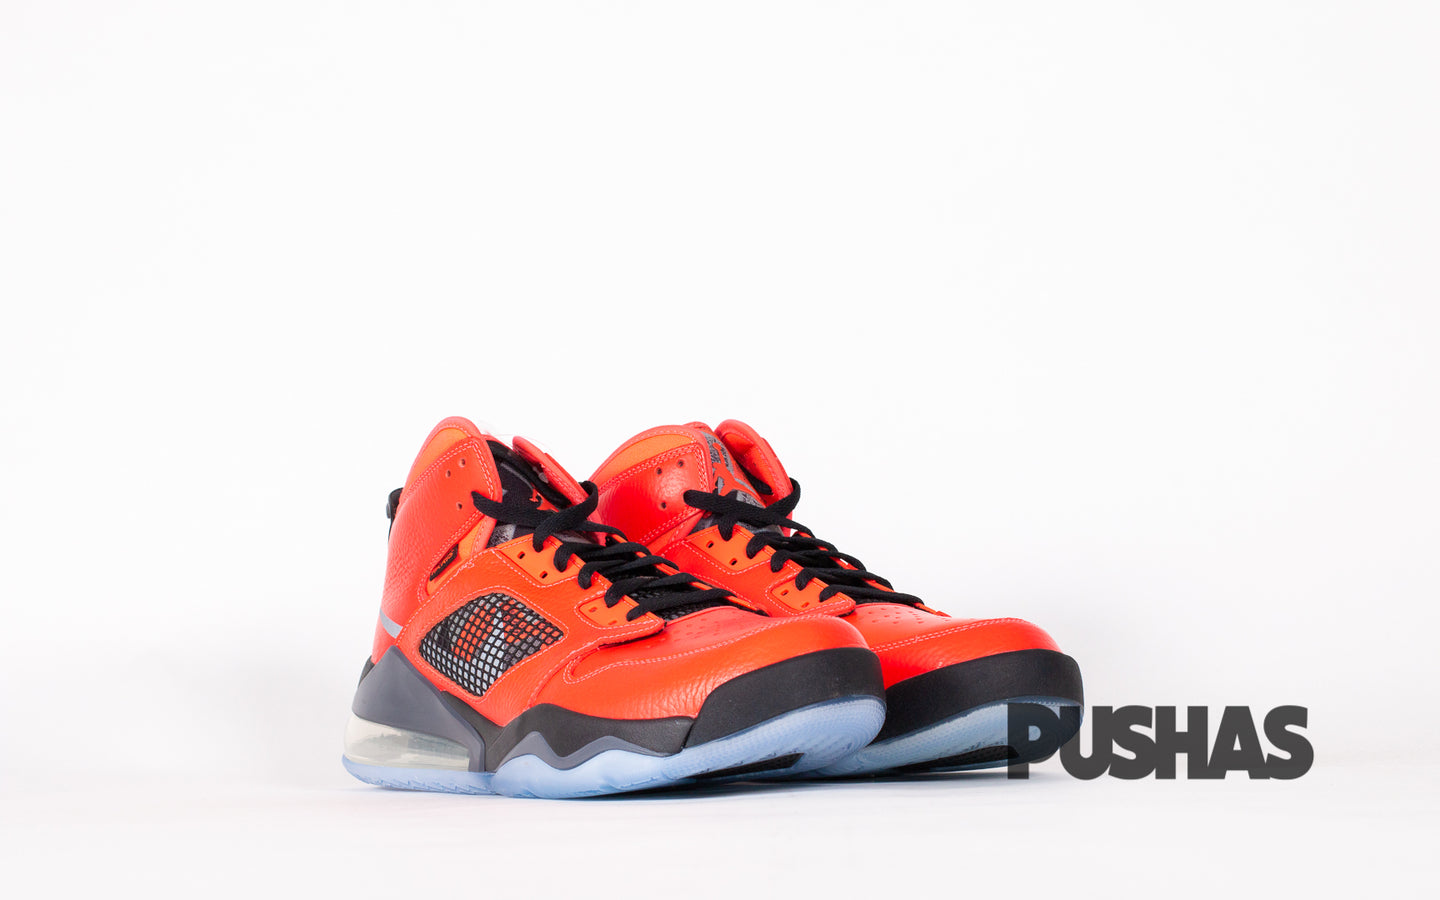 pushas-nike-Jordan-Mars-270-Paris-Saint-Germain